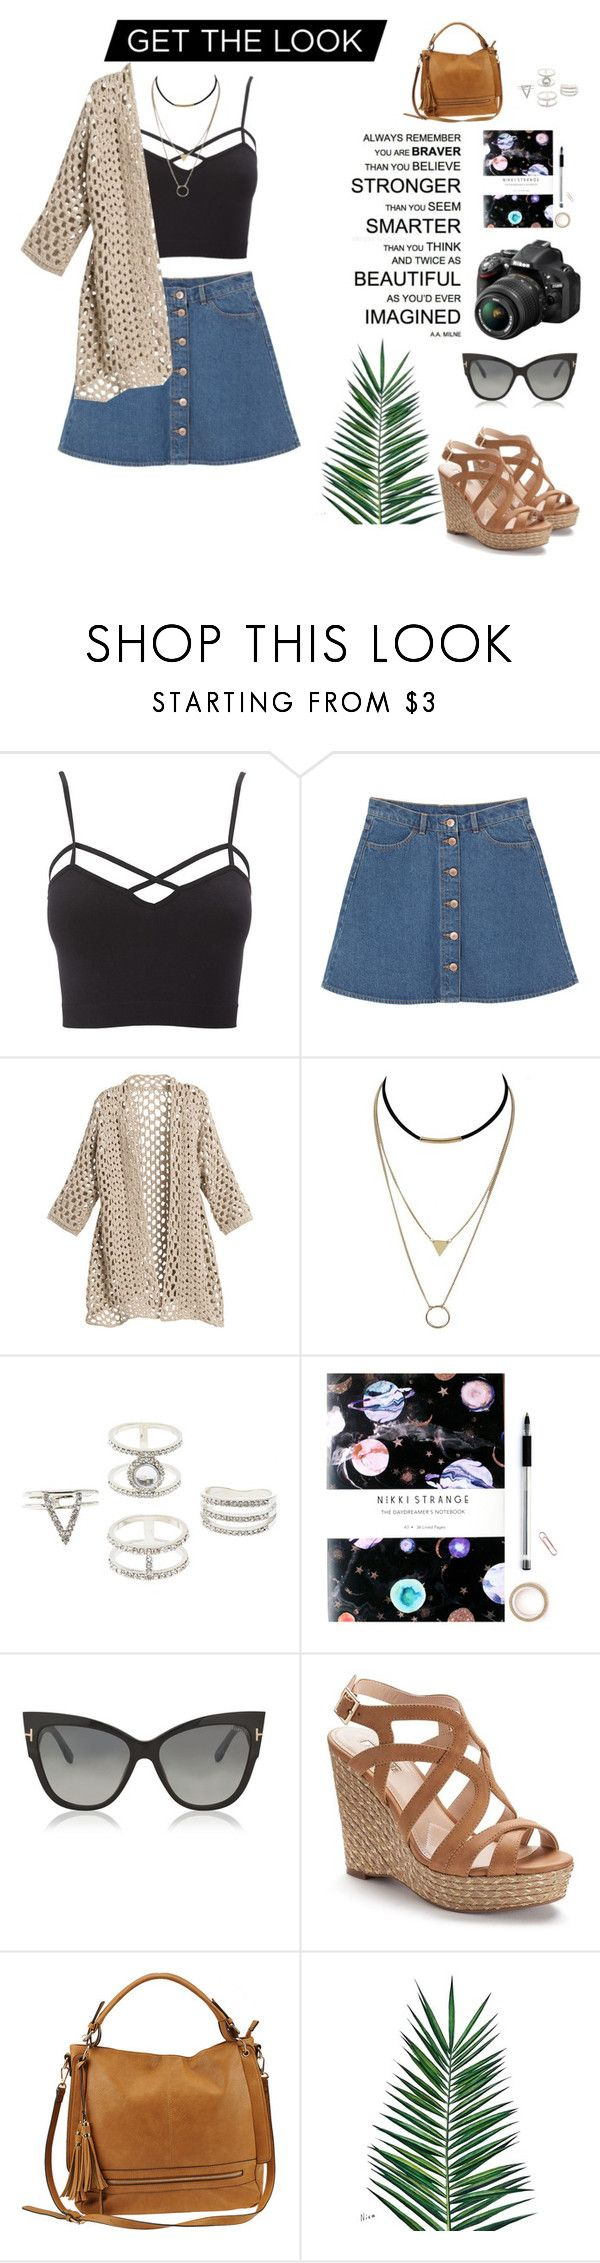 """Get the look!!!!"" by gina-sotirop ❤ liked on Polyvore featuring Charlotte Russe, Monki, Nikon, Nikki Strange, Tom Ford, Jennifer Lopez, Urban Expressions, Nika and plus size clothing"